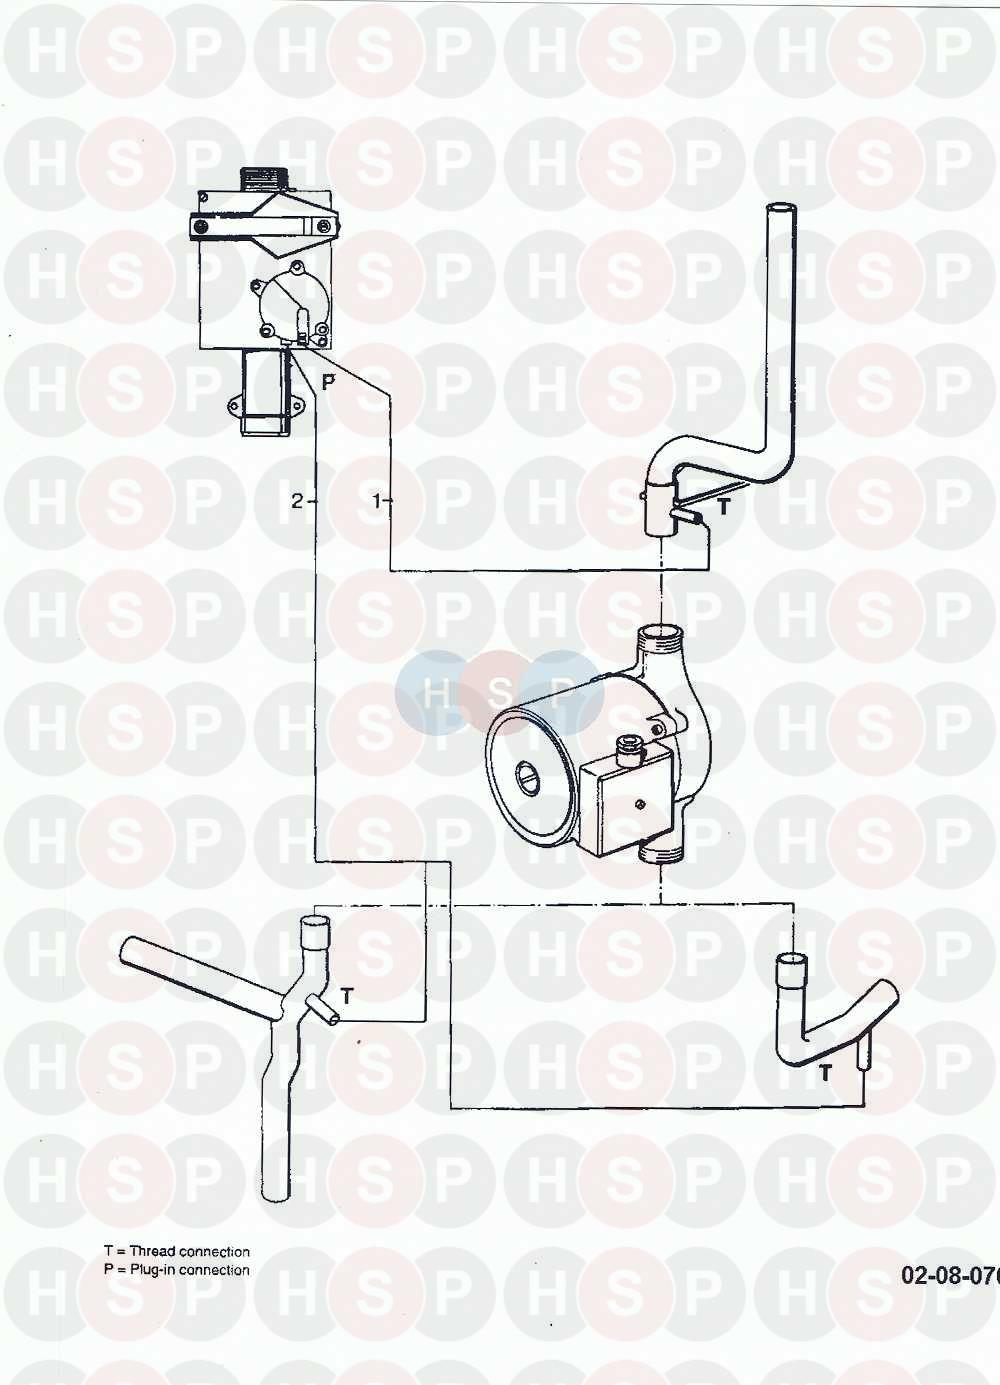 Vaillant THERMOCOMPACT FF VC GB 242 E (08a Connection